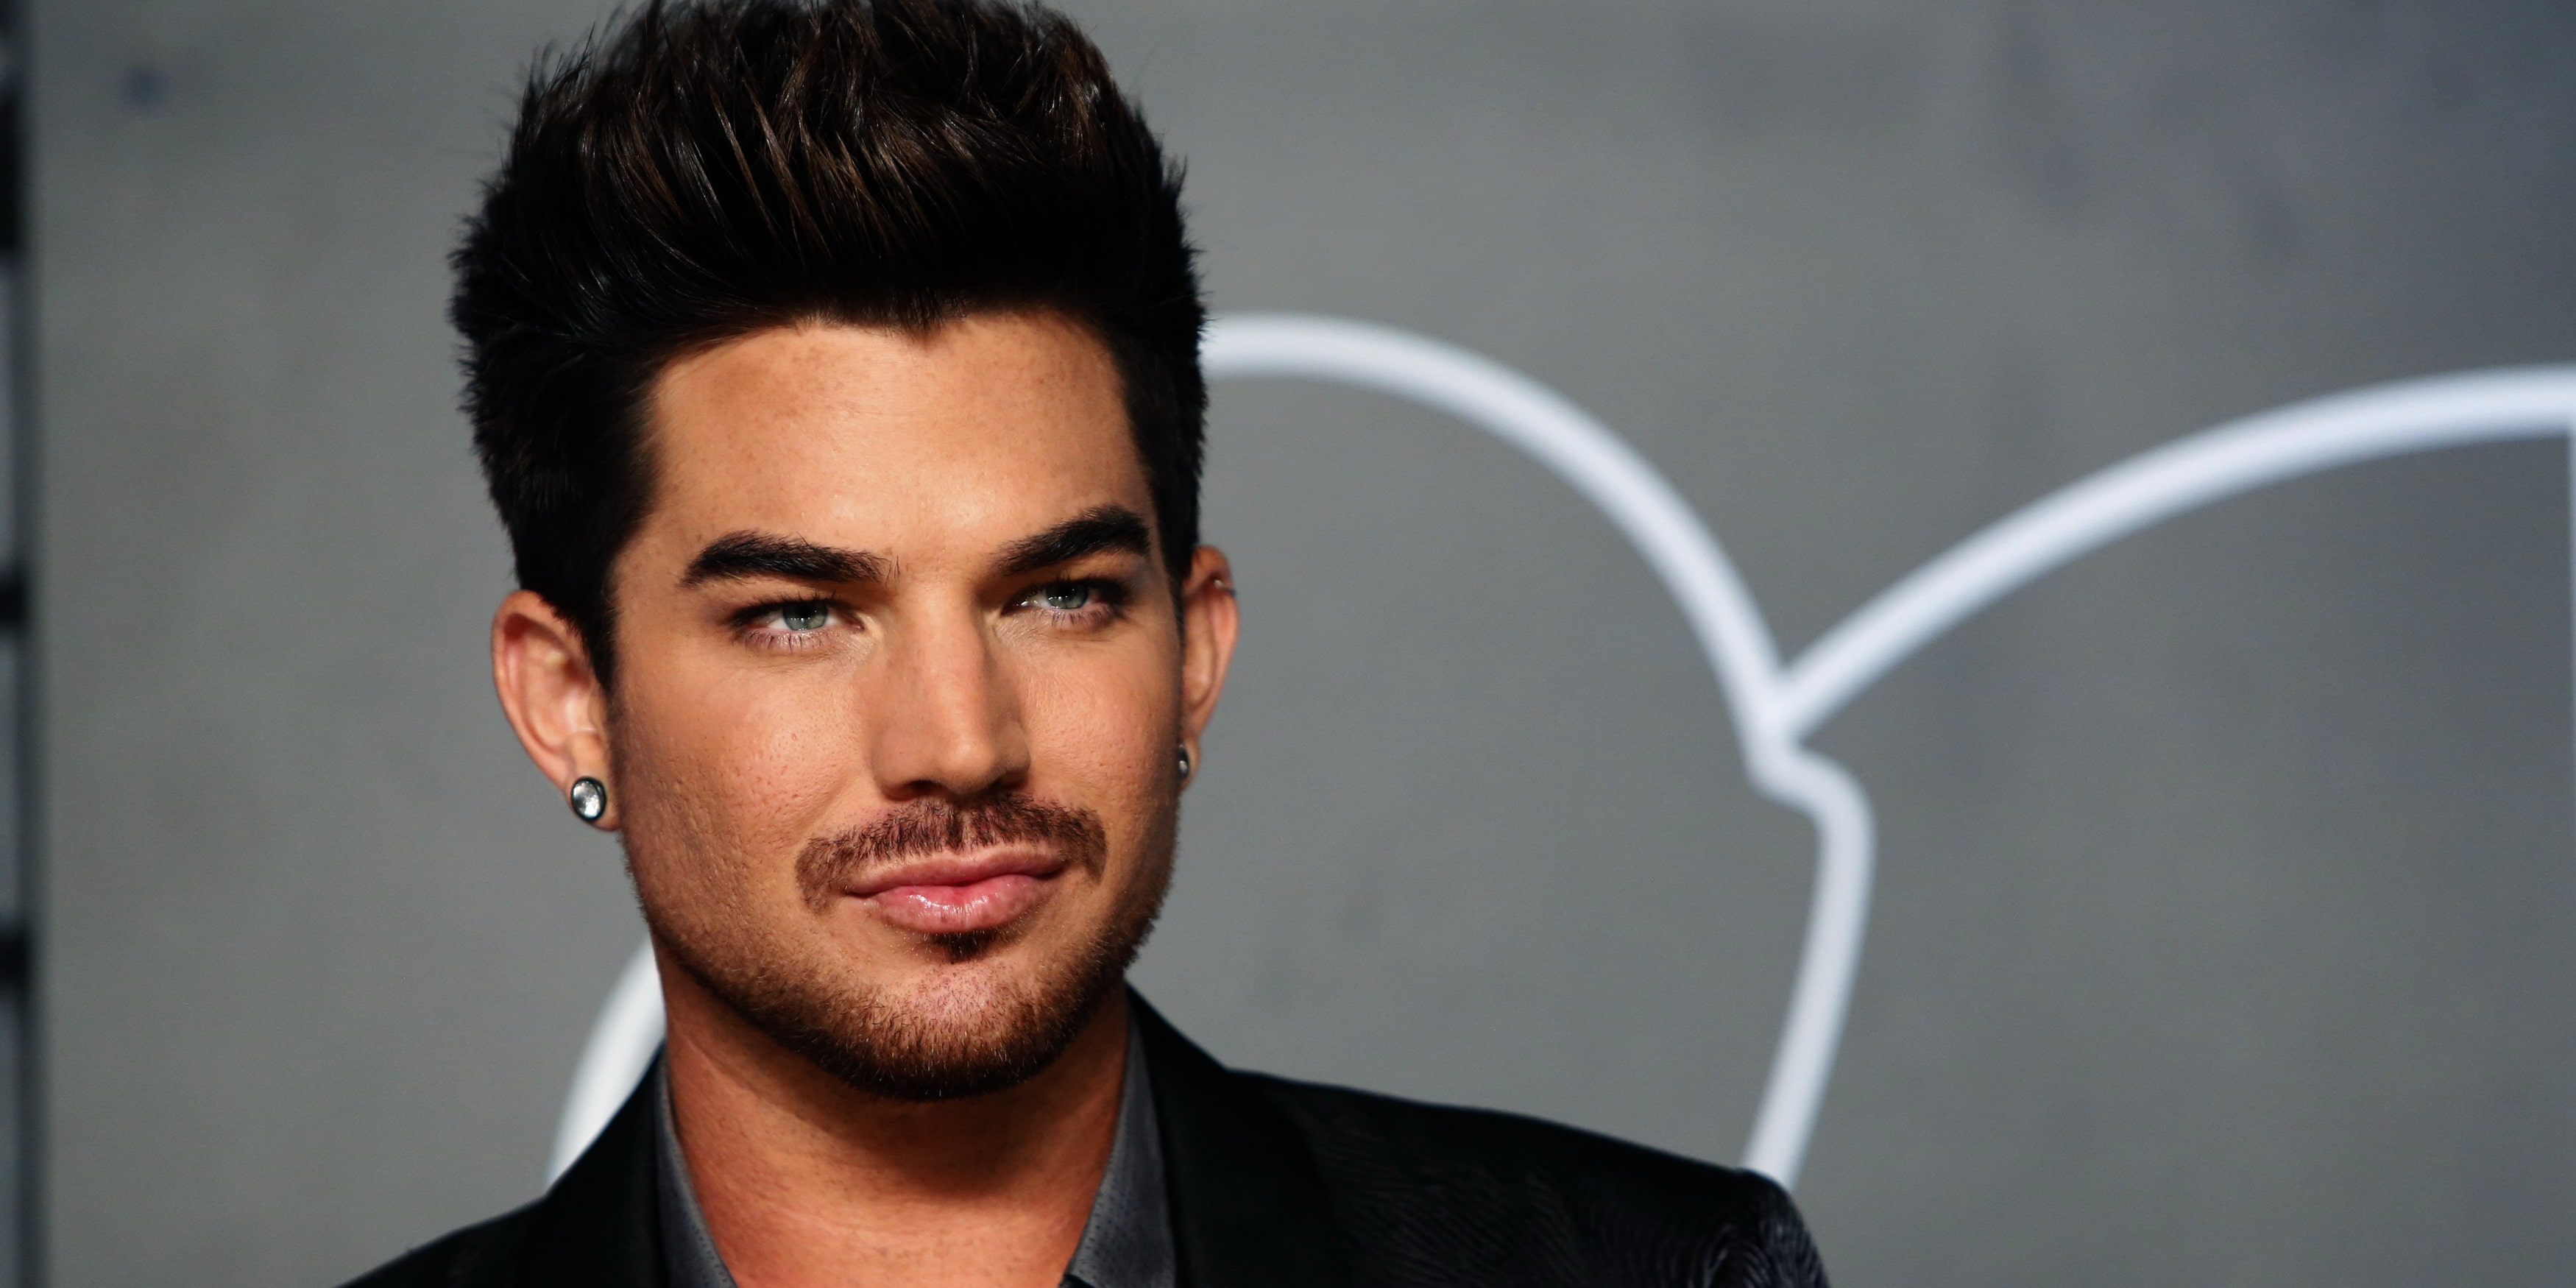 Adam Lambert - Net Worth 2017, Bio, Wiki - Celebrity Net Worth